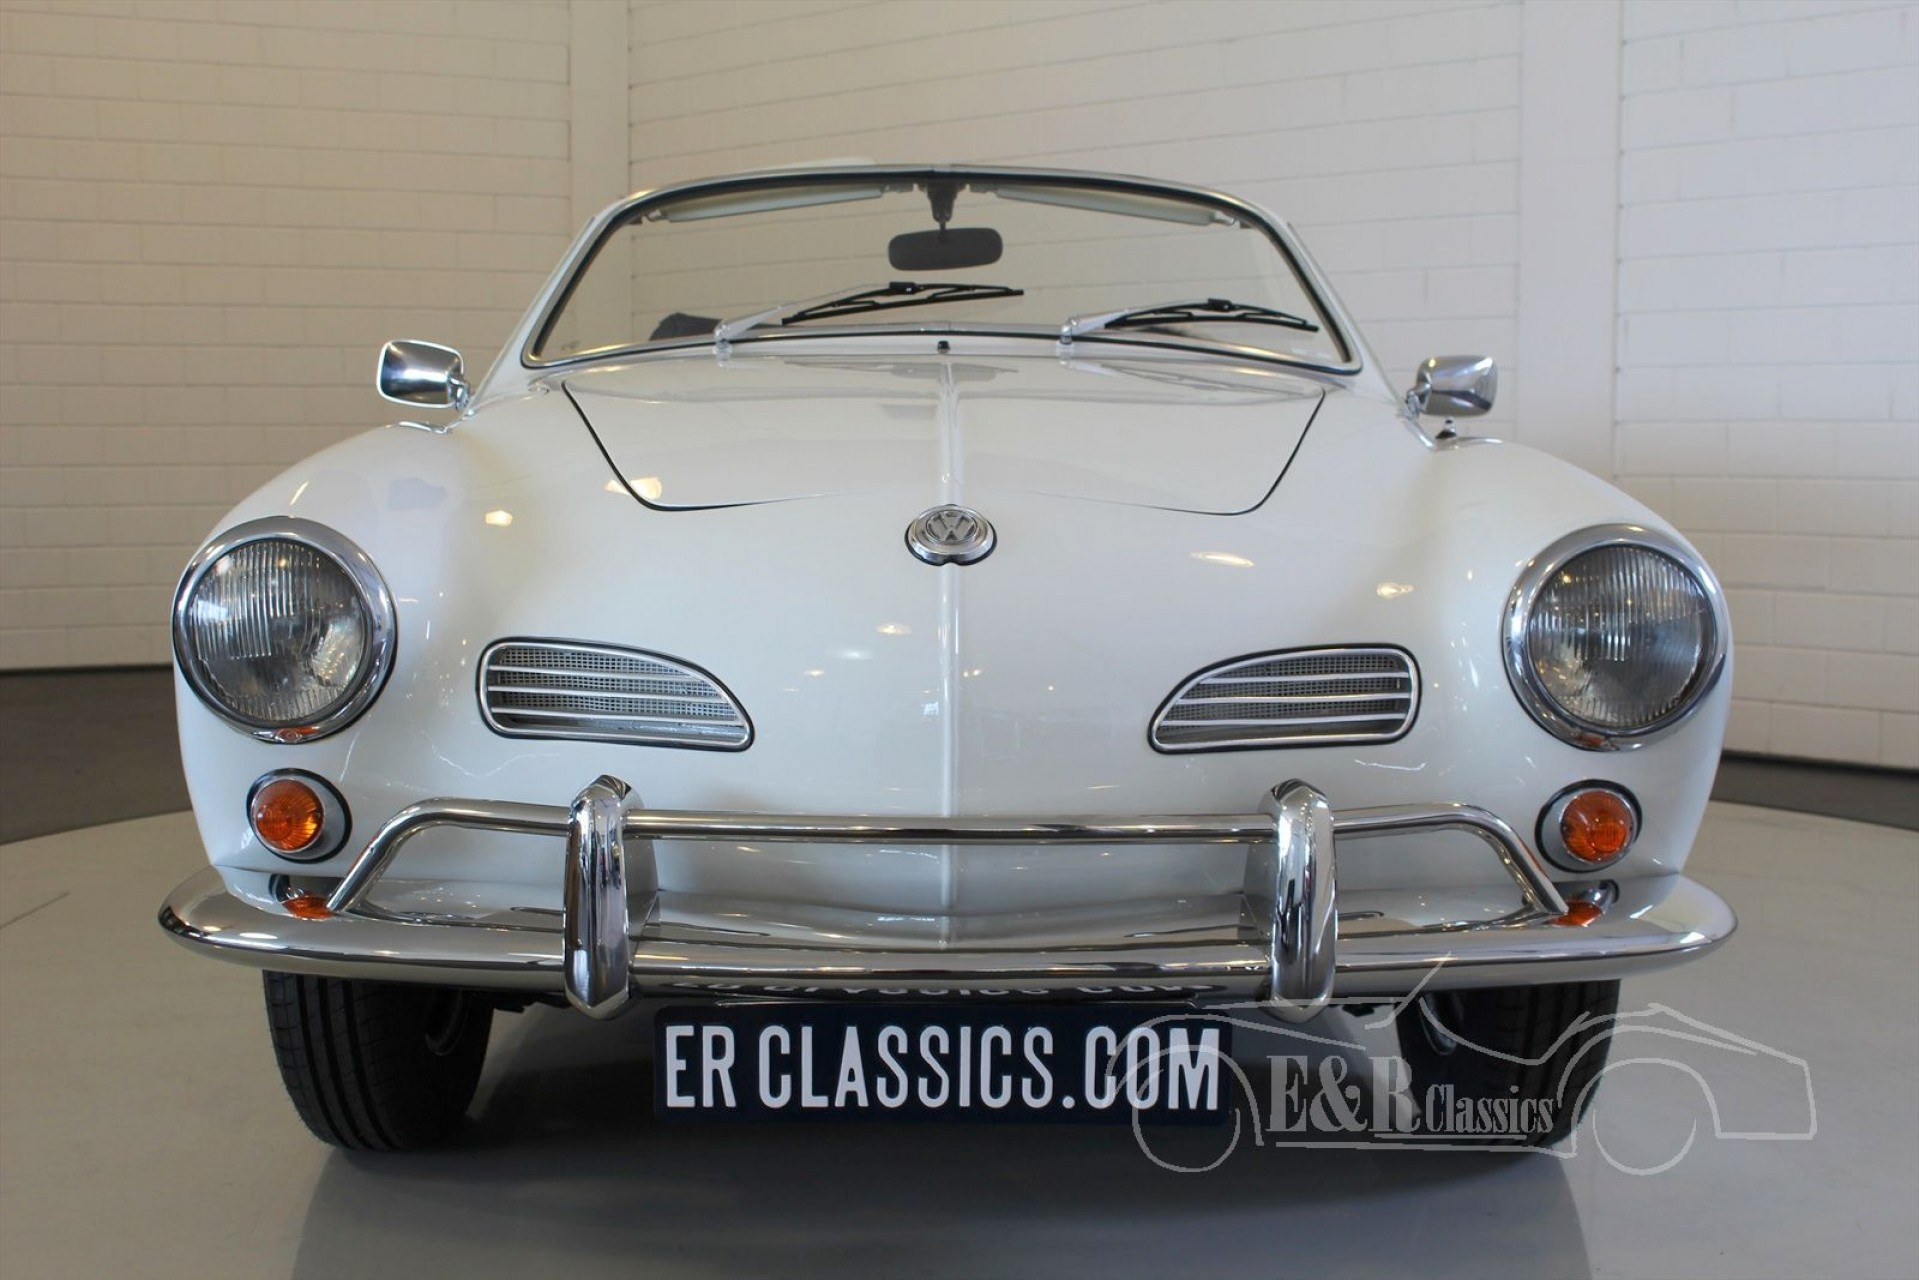 sold bat auctions trailer a listing ghia lot karmann vw for bring august mile on volkswagen sale